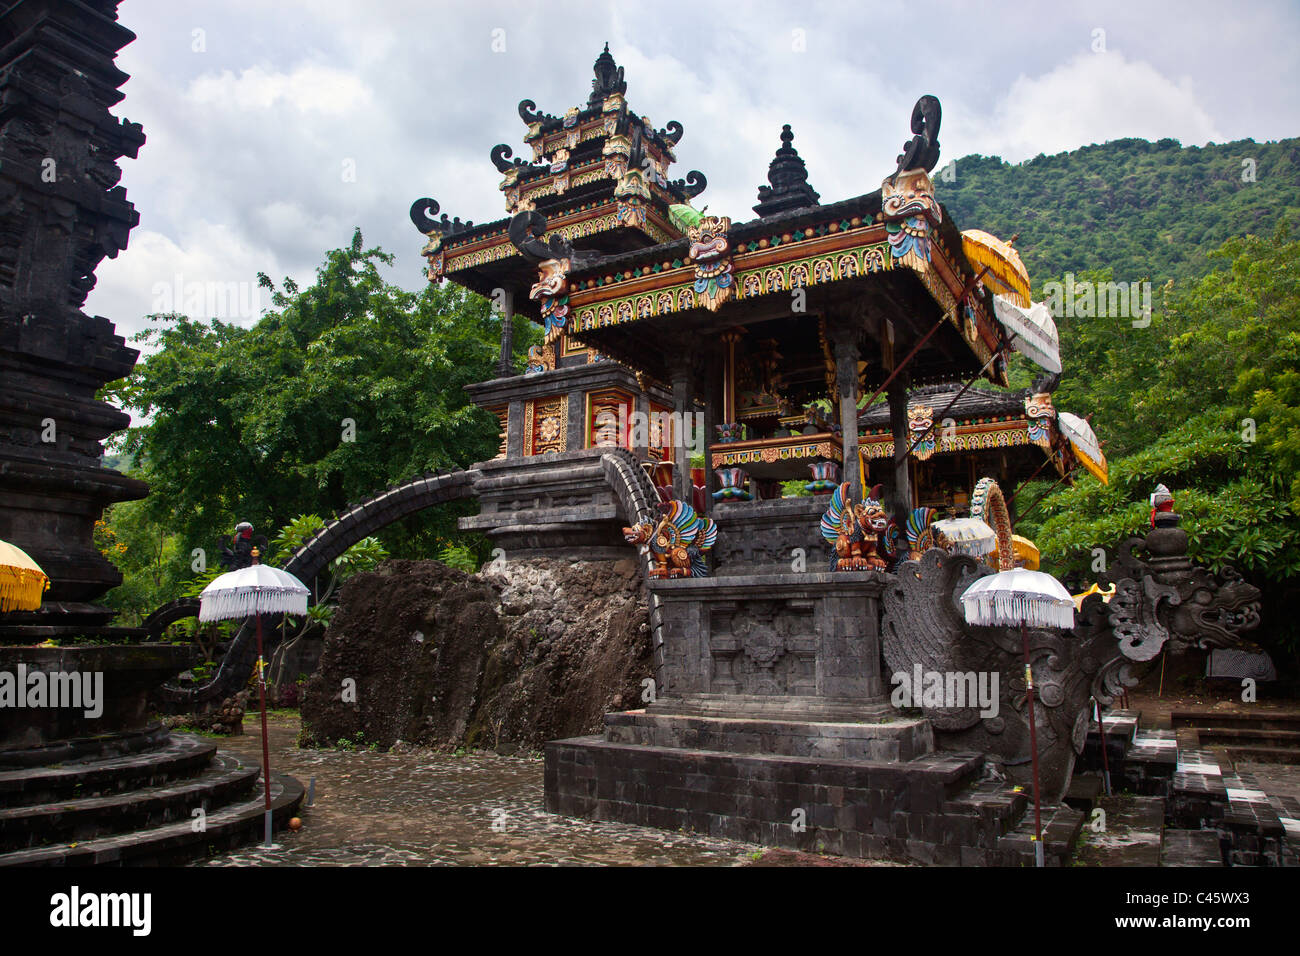 PURA MELANTING is a Hindu temple located in a beautiful agriculture valley near PEMUTERAN - BALI, INDONESIA - Stock Image